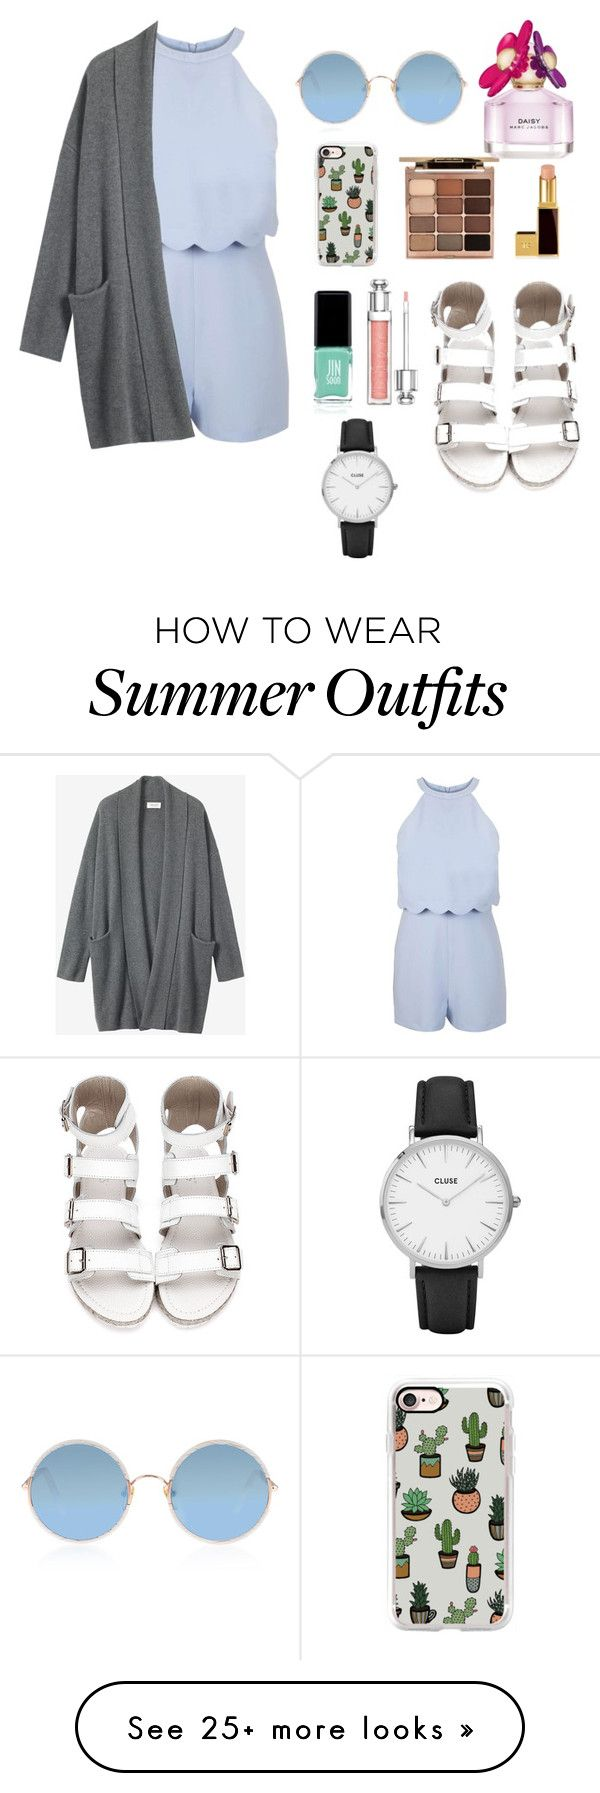 """""""Spring inspried outfit for warm November in NZ"""" by lynksmichelle on Polyvore featuring Miss Selfridge, Toast, Sunday Somewhere, Casetify, Stila, Tom Ford, Jin Soon, Christian Dior, Marc Jacobs and CLUSE"""